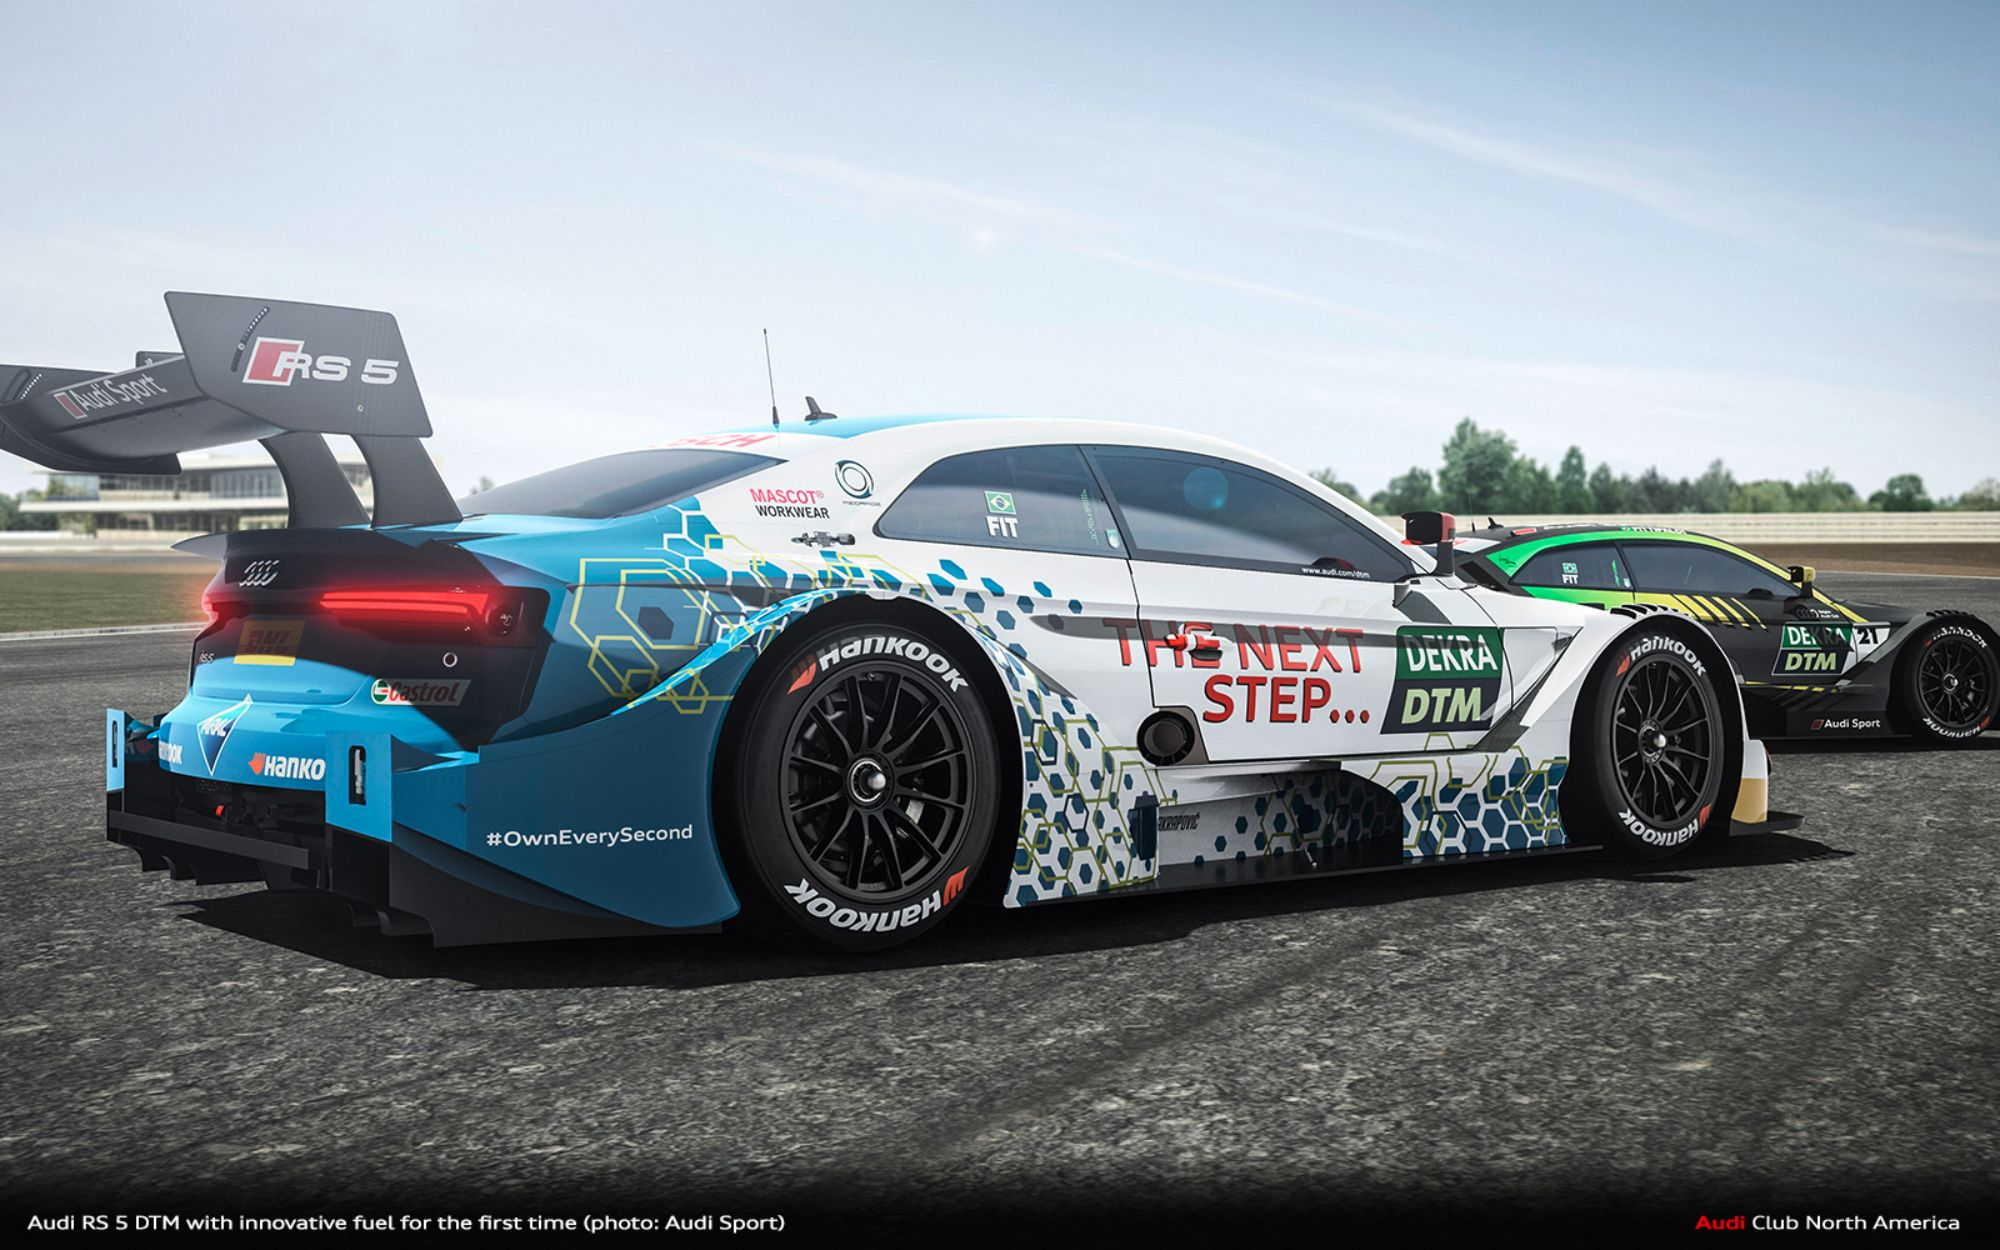 Premiere At DTM Finale: Audi RS 5 DTM With Innovative Fuel For The First Time